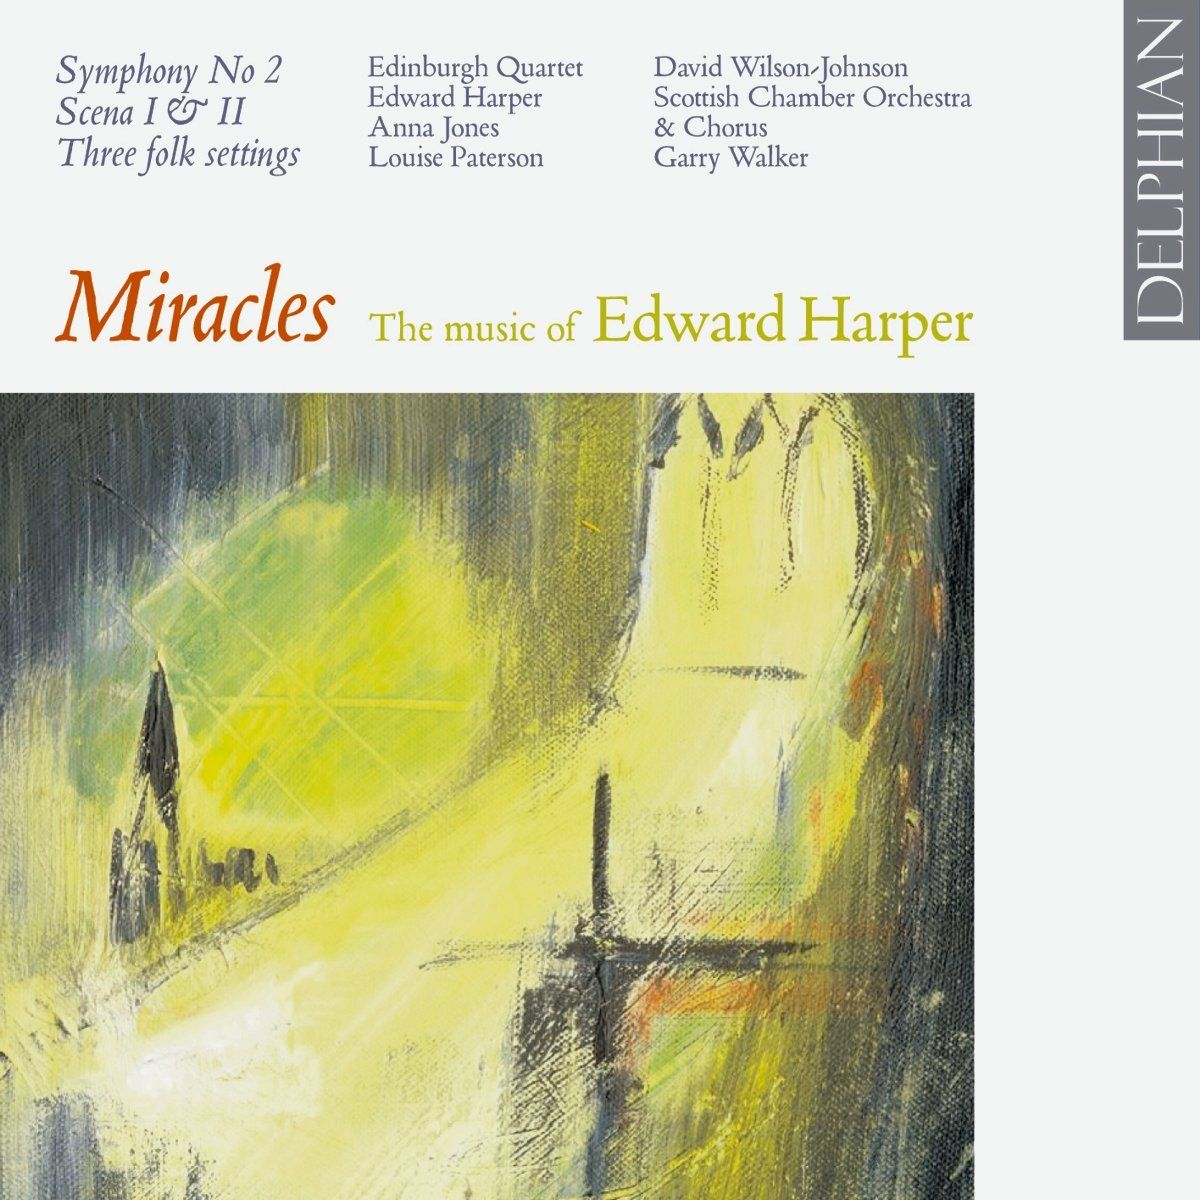 Miracles: The music of Edward Harper CD Delphian Records